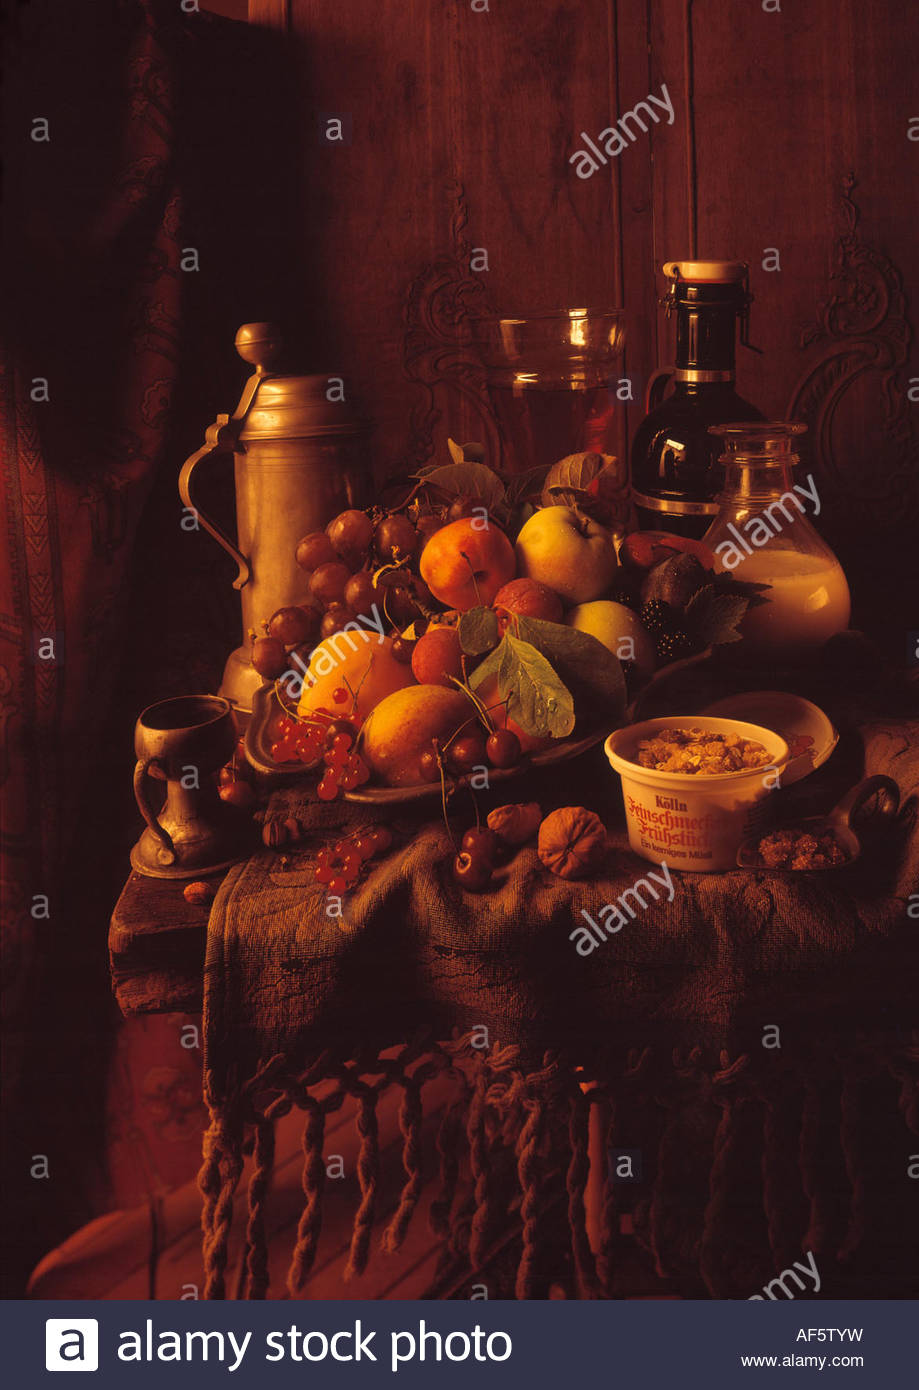 how to draw a bowl of fruit still life